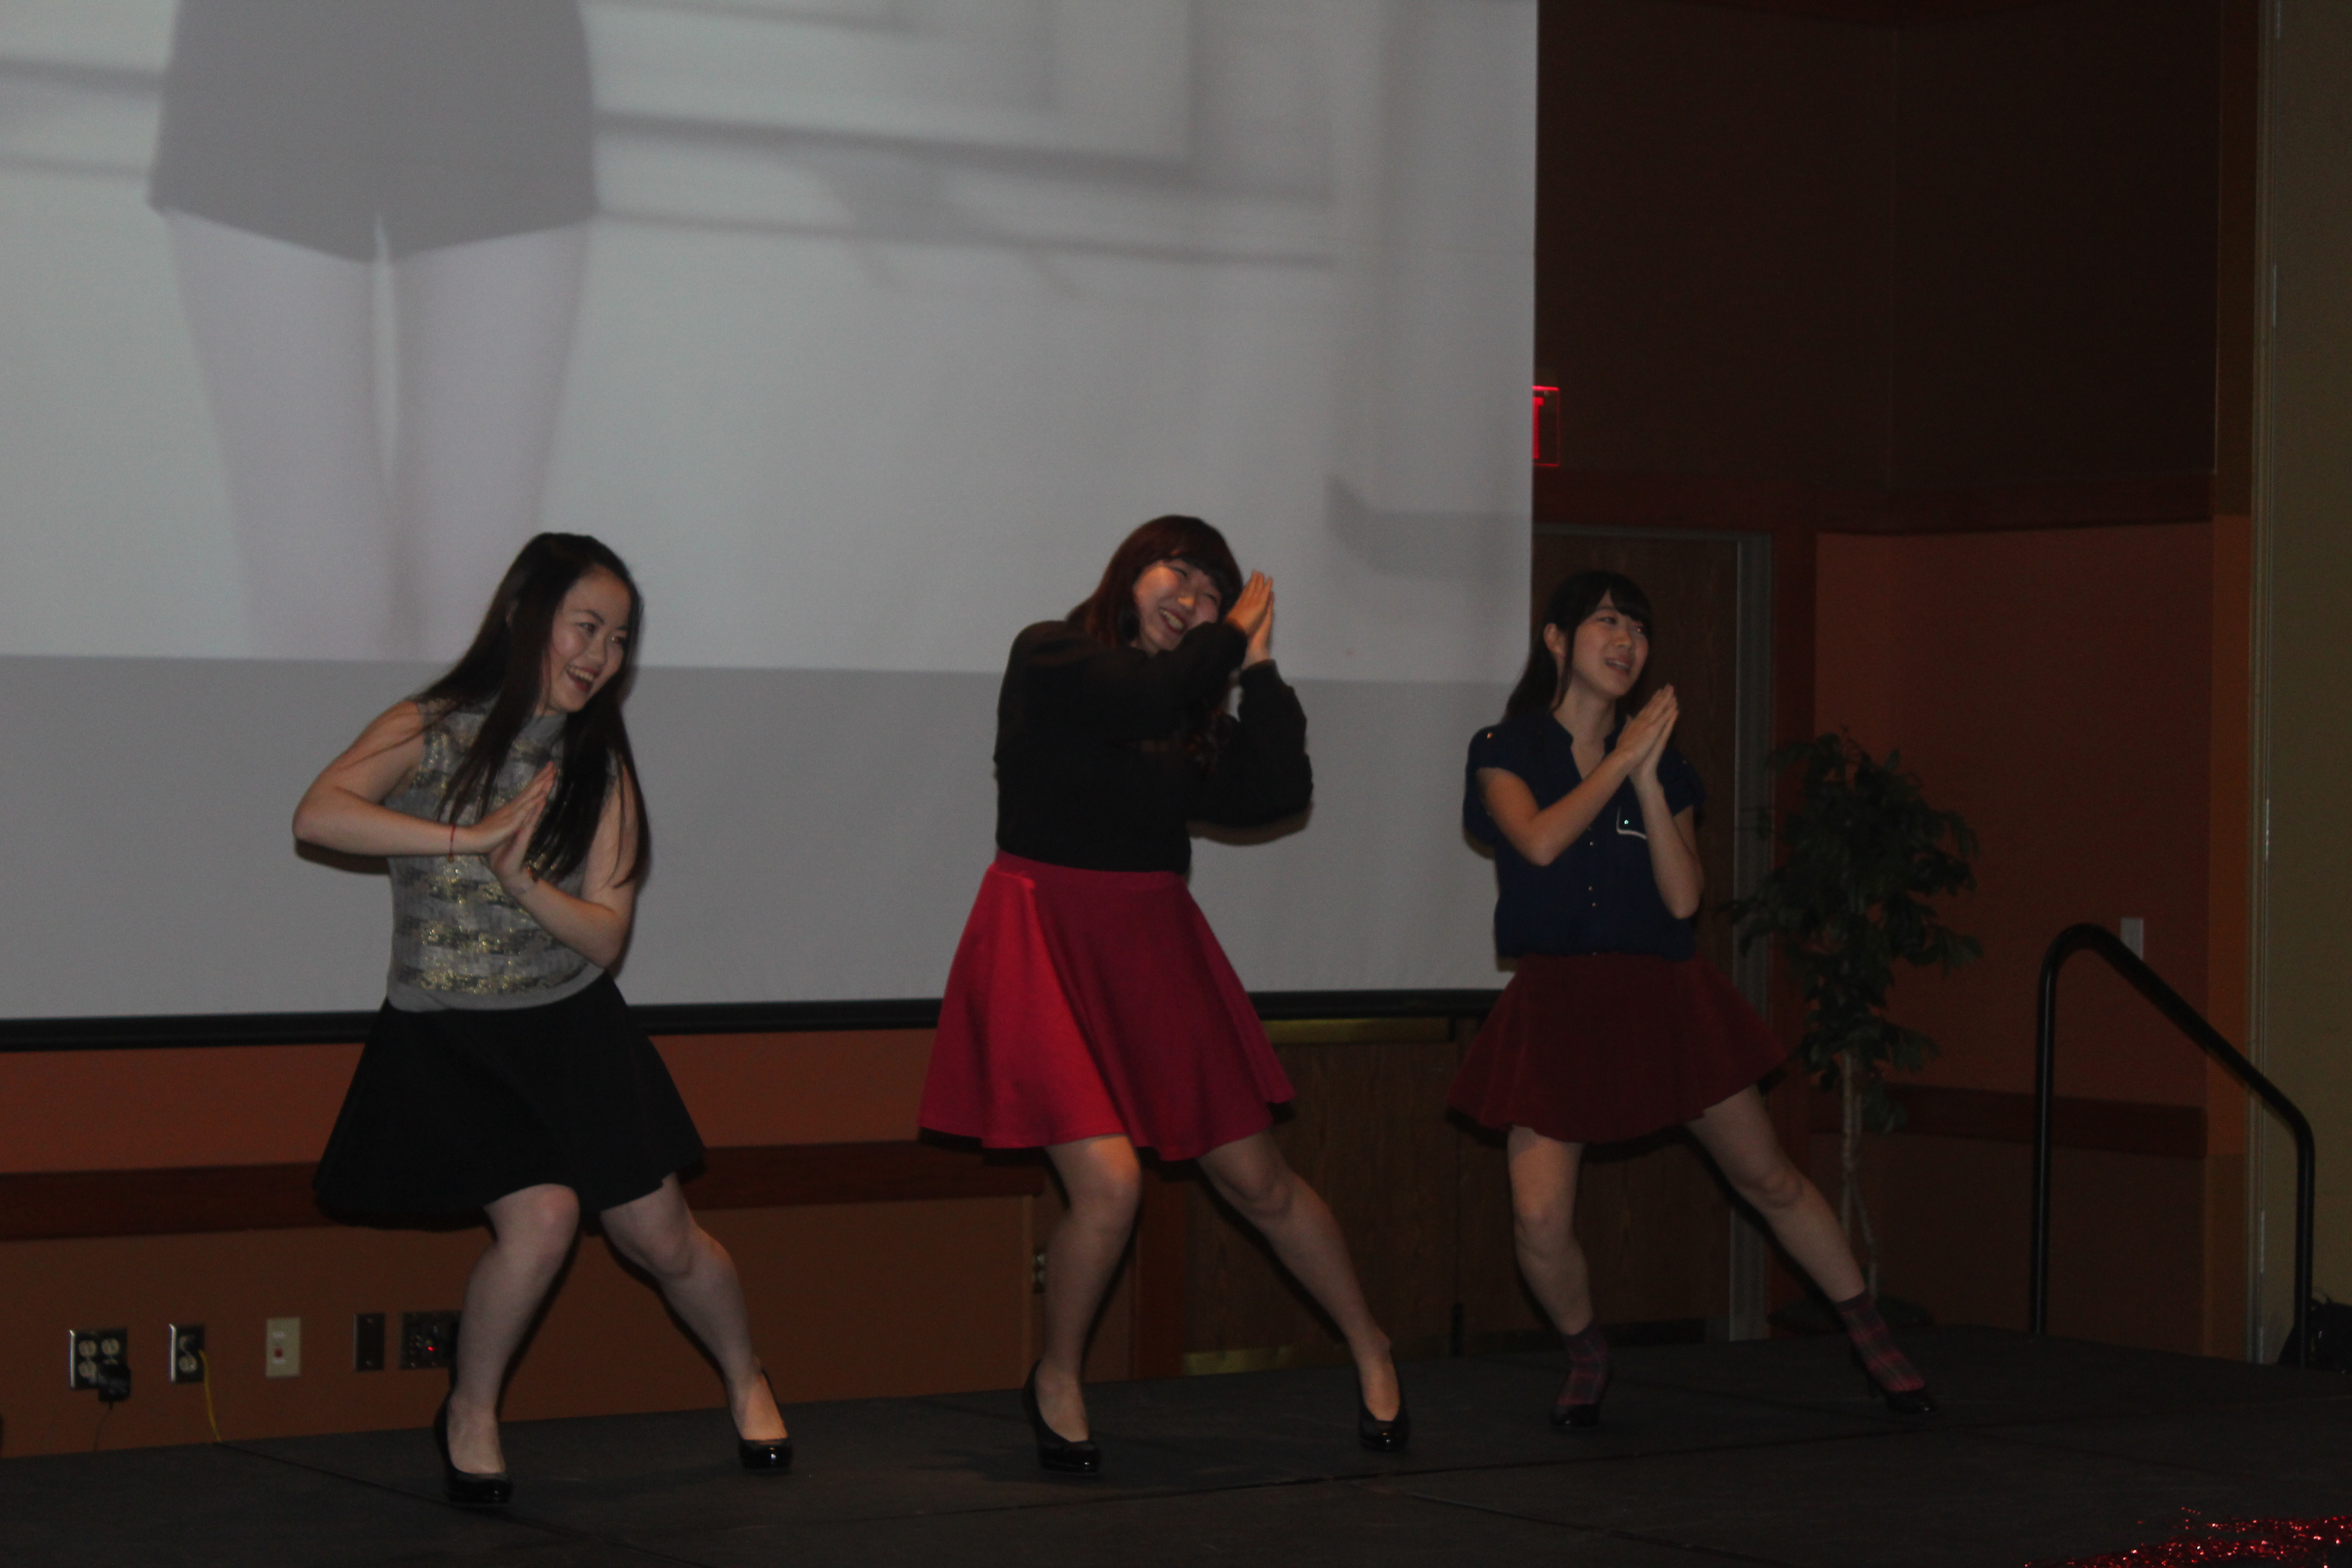 3 Chinese women dancing